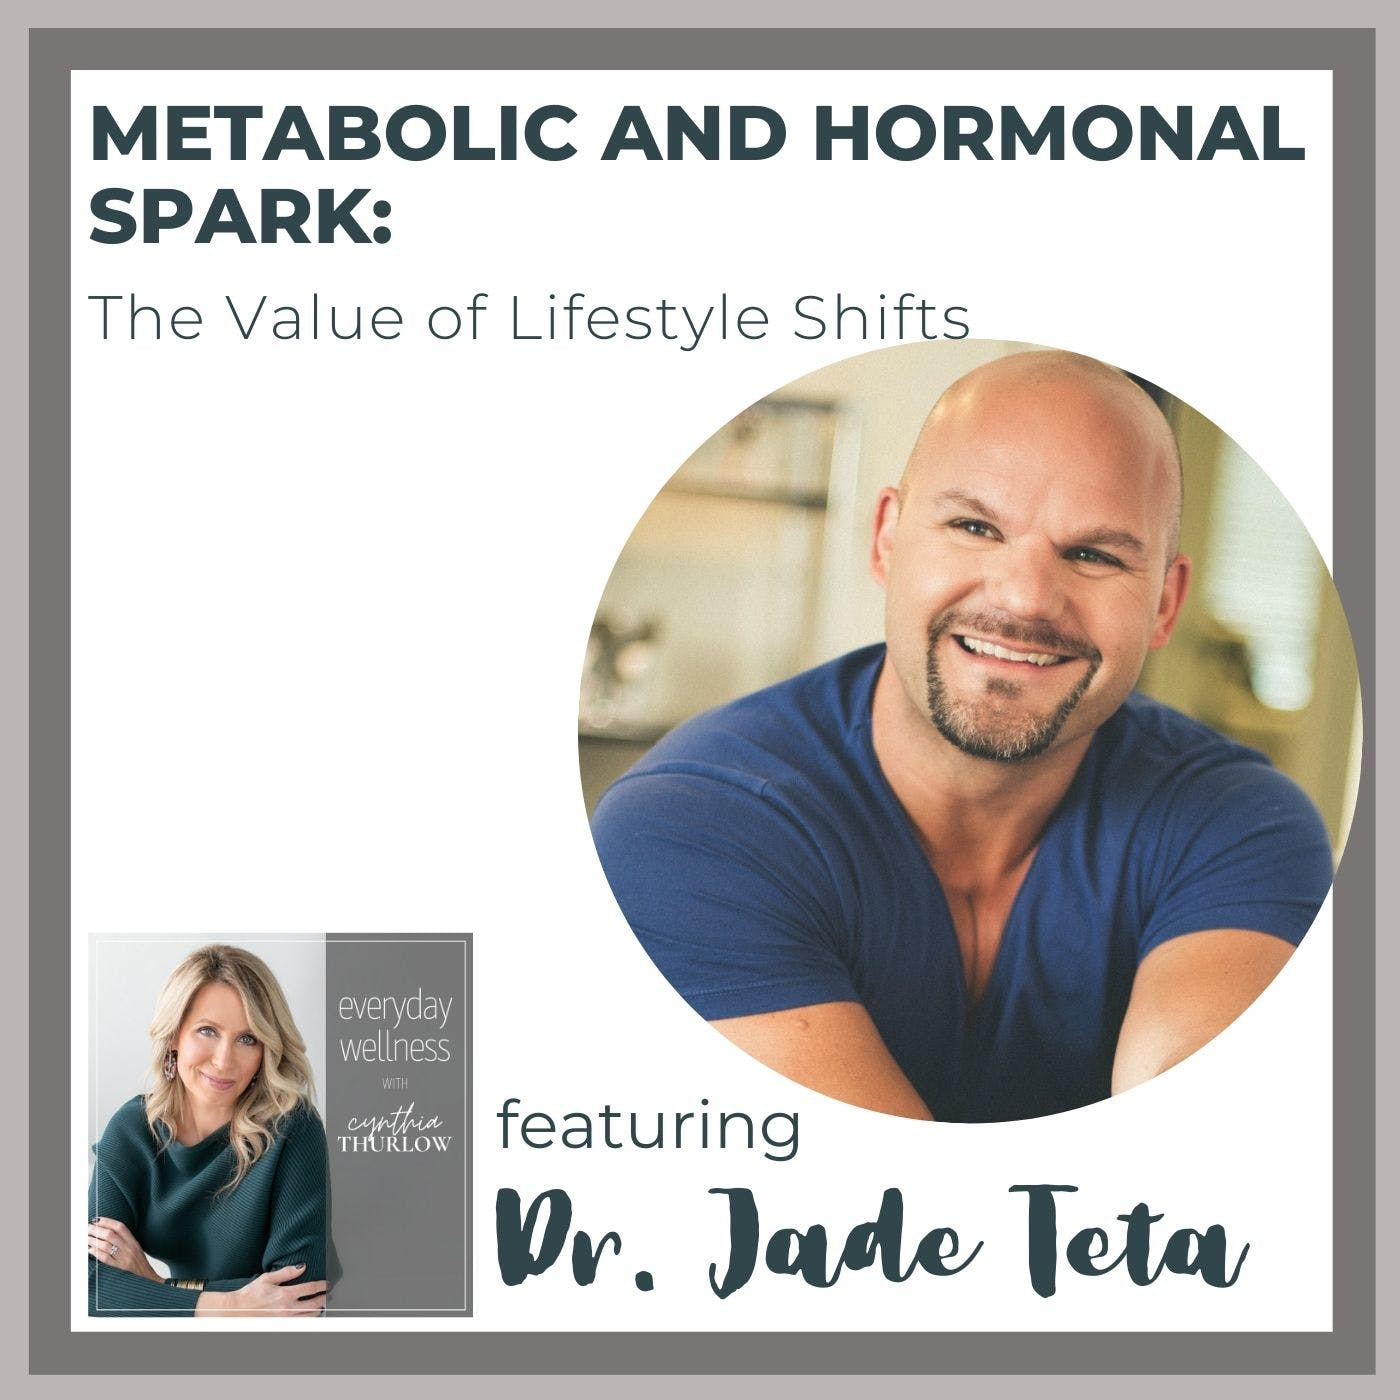 Ep. 152 Metabolic and Hormonal Spark: The Value of Lifestyle Shifts with Dr. Jade Teta